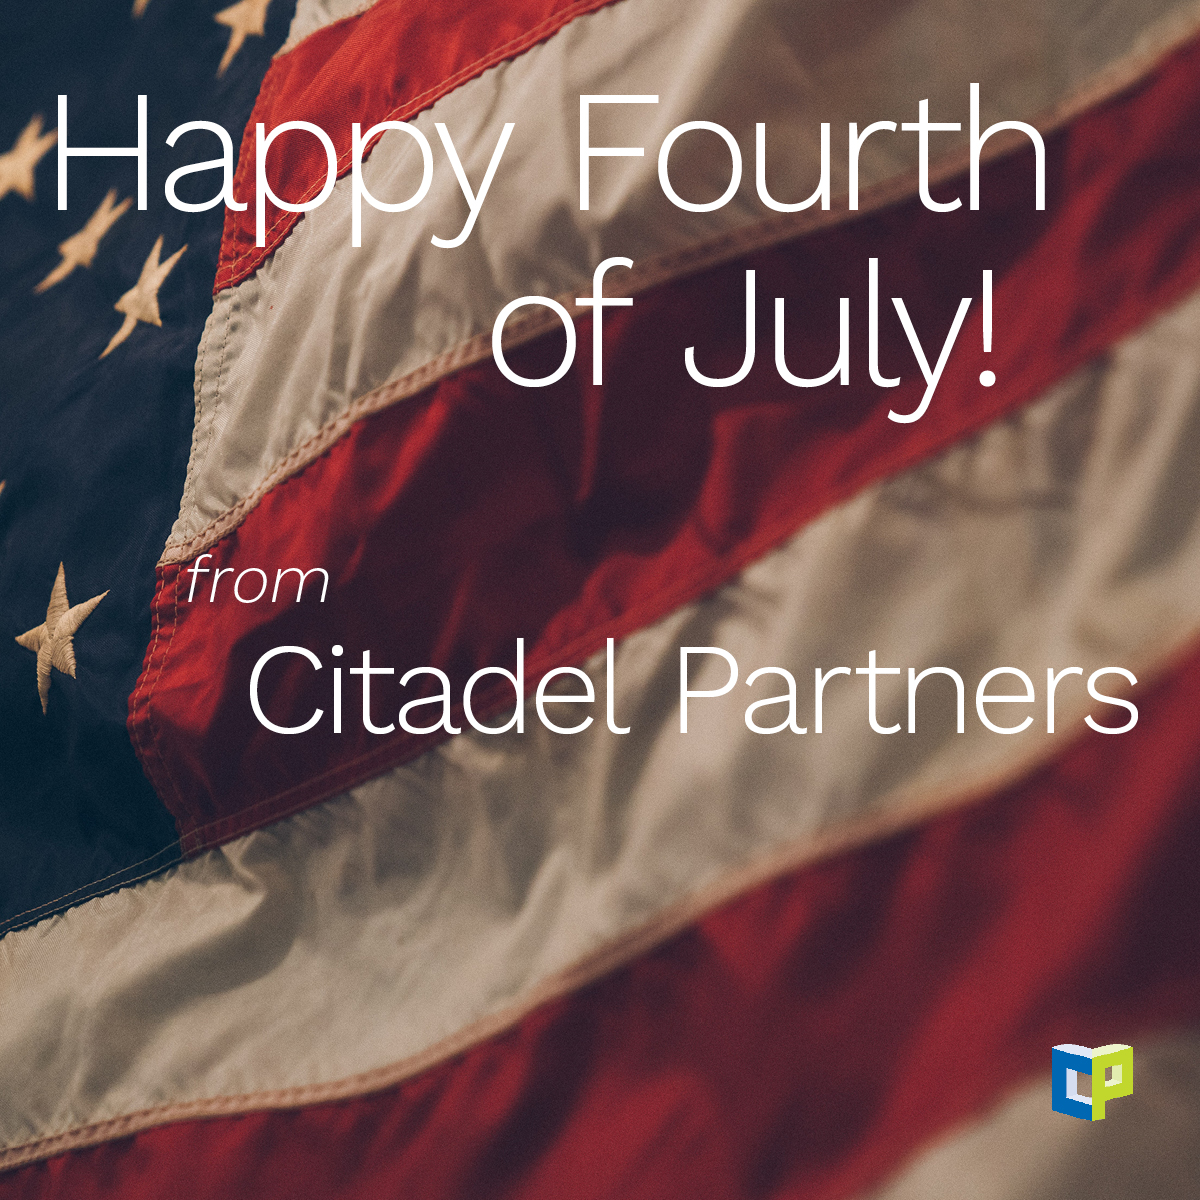 test Twitter Media - Wishing You and Your Family a Safe and Happy Fourth of July Weekend! #CitadelPartners #dallastx #DallasCommercialRealEstate #independenceday #americanflag #summer2020 https://t.co/ZF8Lg8TZ4U